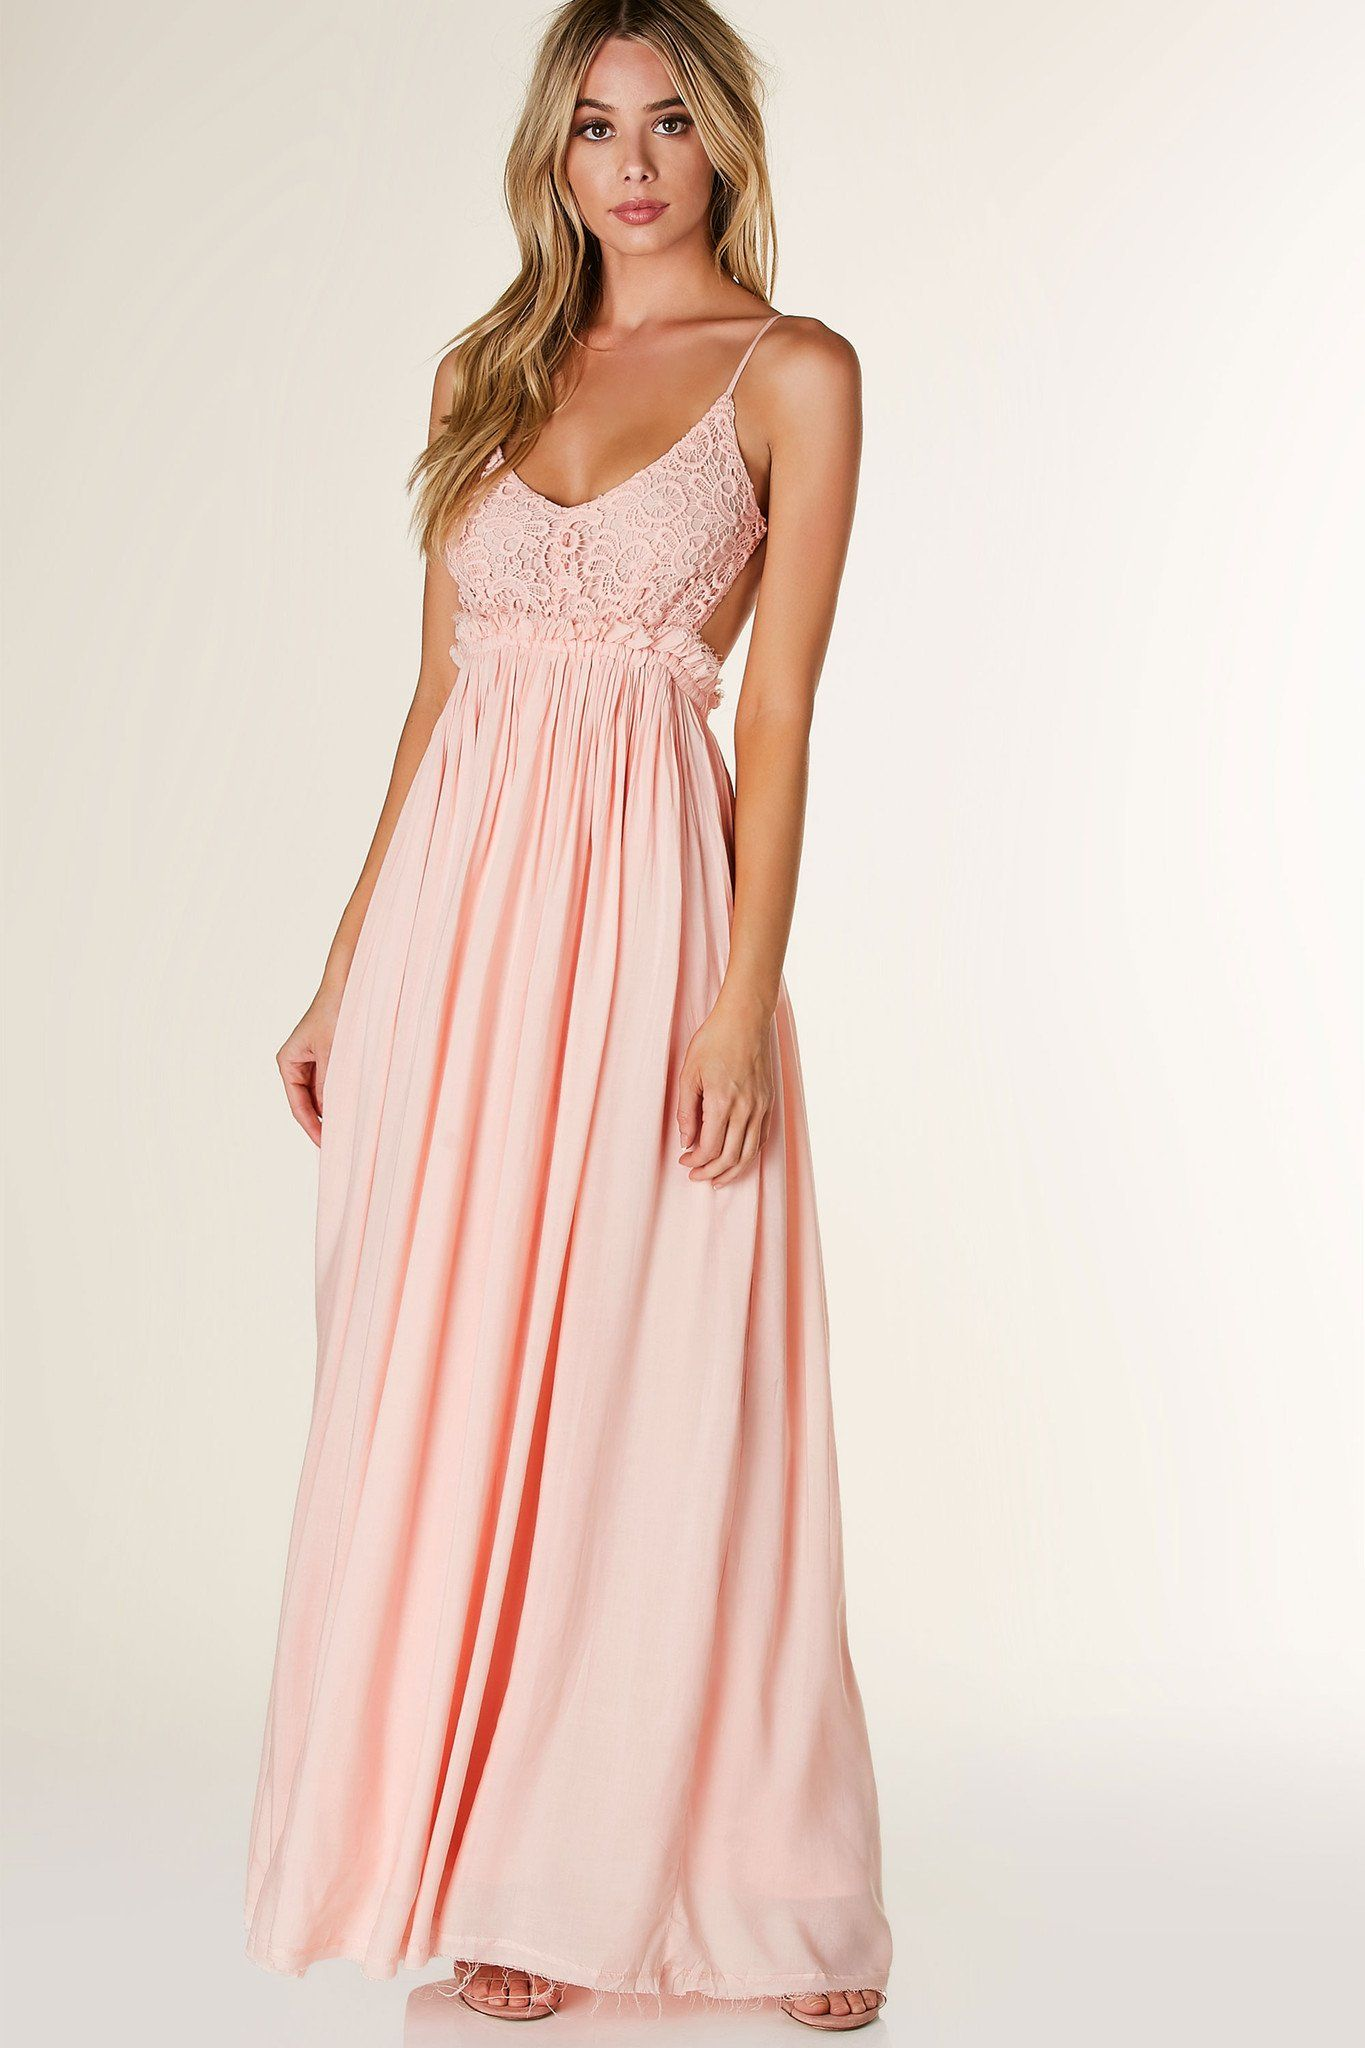 Stunning open back maxi dress with contrast crochet design ...